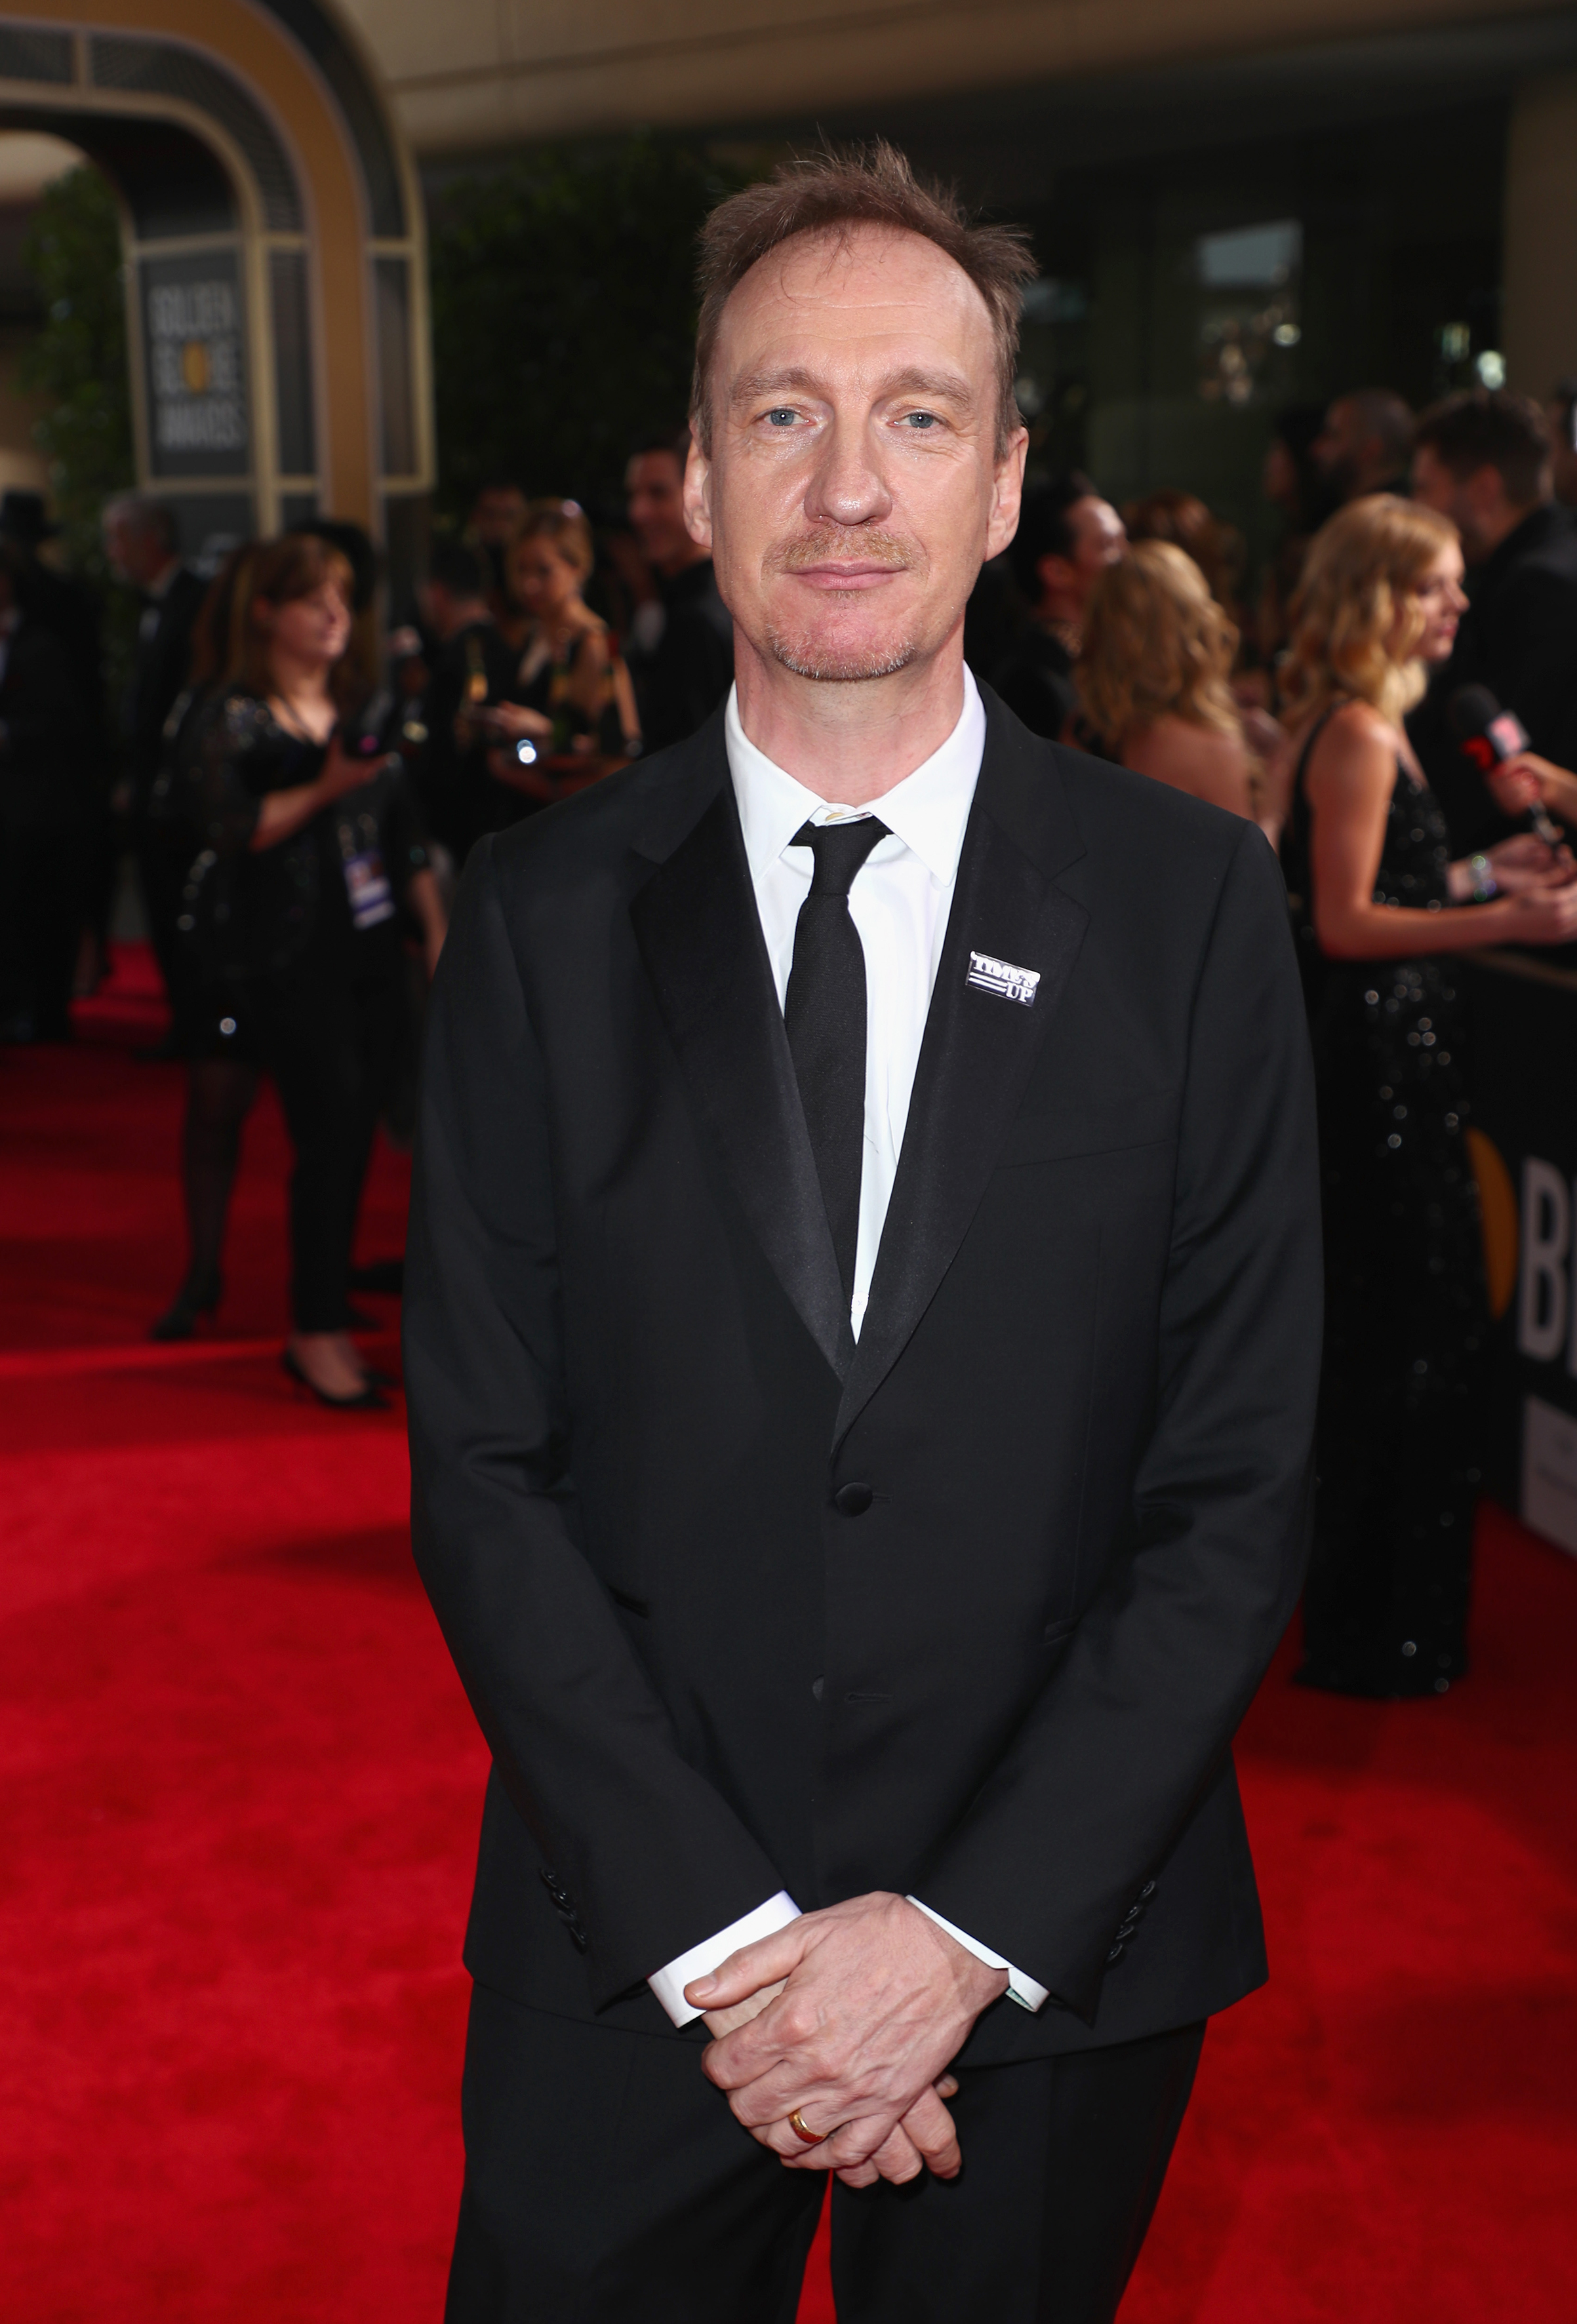 David Thewlis celebrates The 75th Annual Golden Globe Awards with Moet & Chandon at The Beverly Hilton Hotel on January 7, 2018 in Beverly Hills, California.